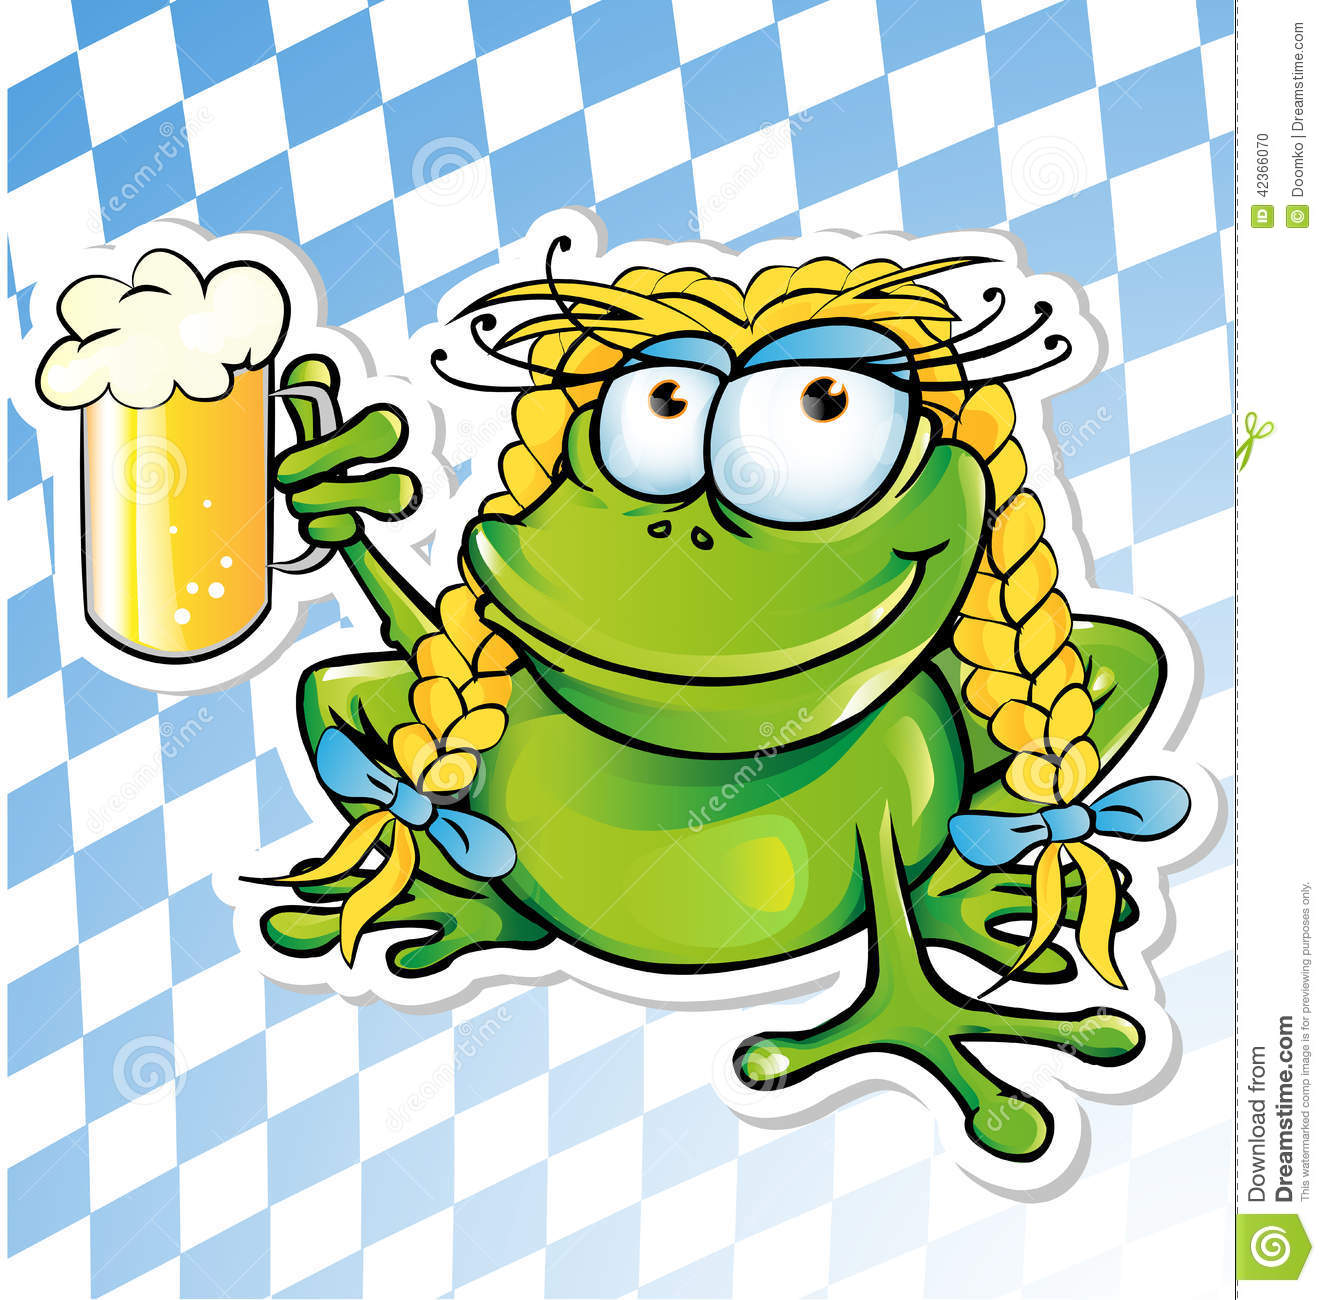 Stock Illustration Funny Frog Cartoon Beer Glass Image42366070 on 3d animated objects